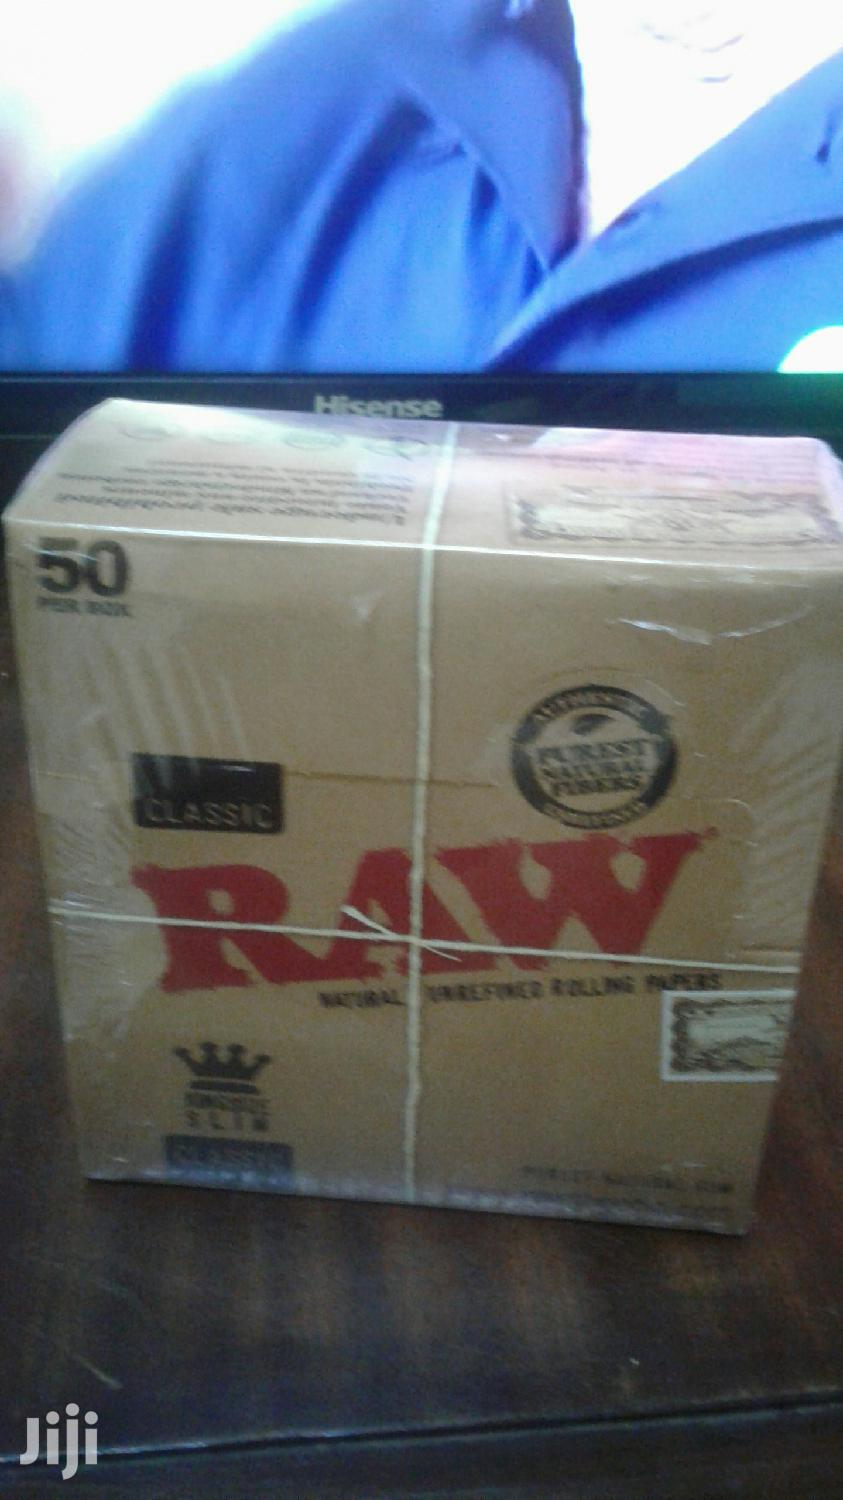 Raw King Size Rolling Papers | Home Accessories for sale in Nairobi Central, Nairobi, Kenya